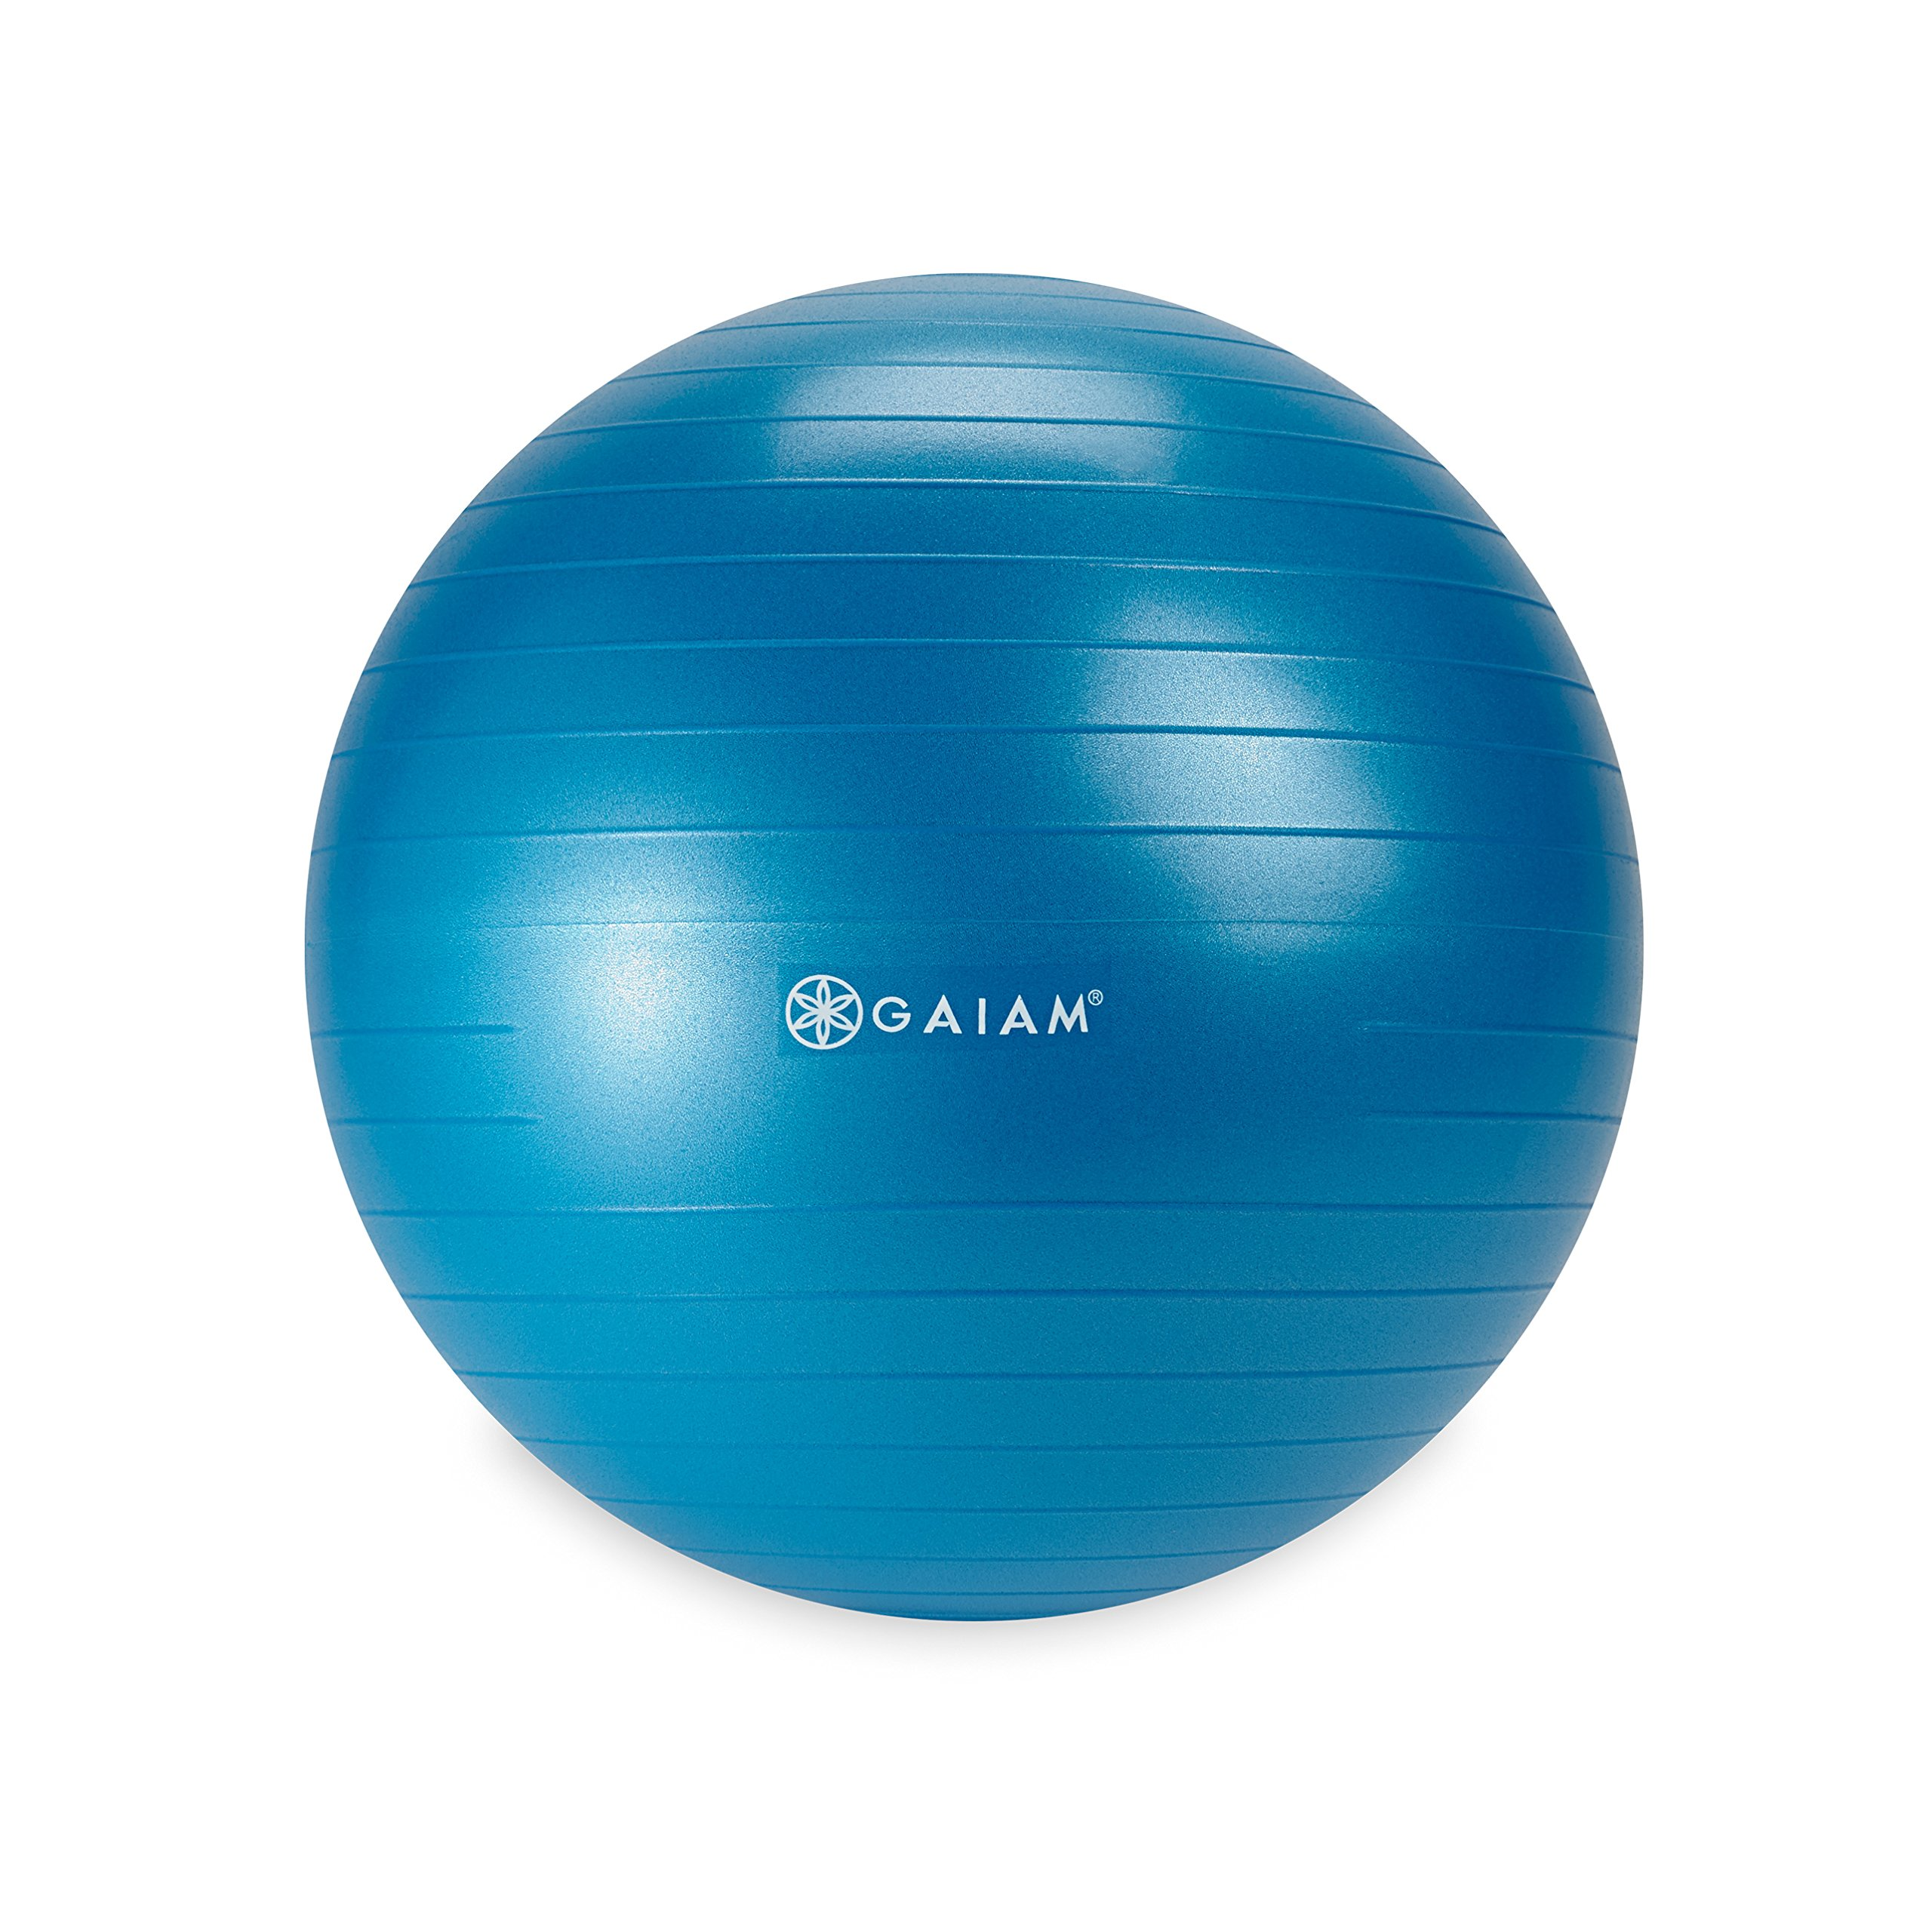 Gaiam Kids Balance Ball – Exercise Stability Yoga Ball, Kids Alternative Flexible Seating for Active Children in Home or…